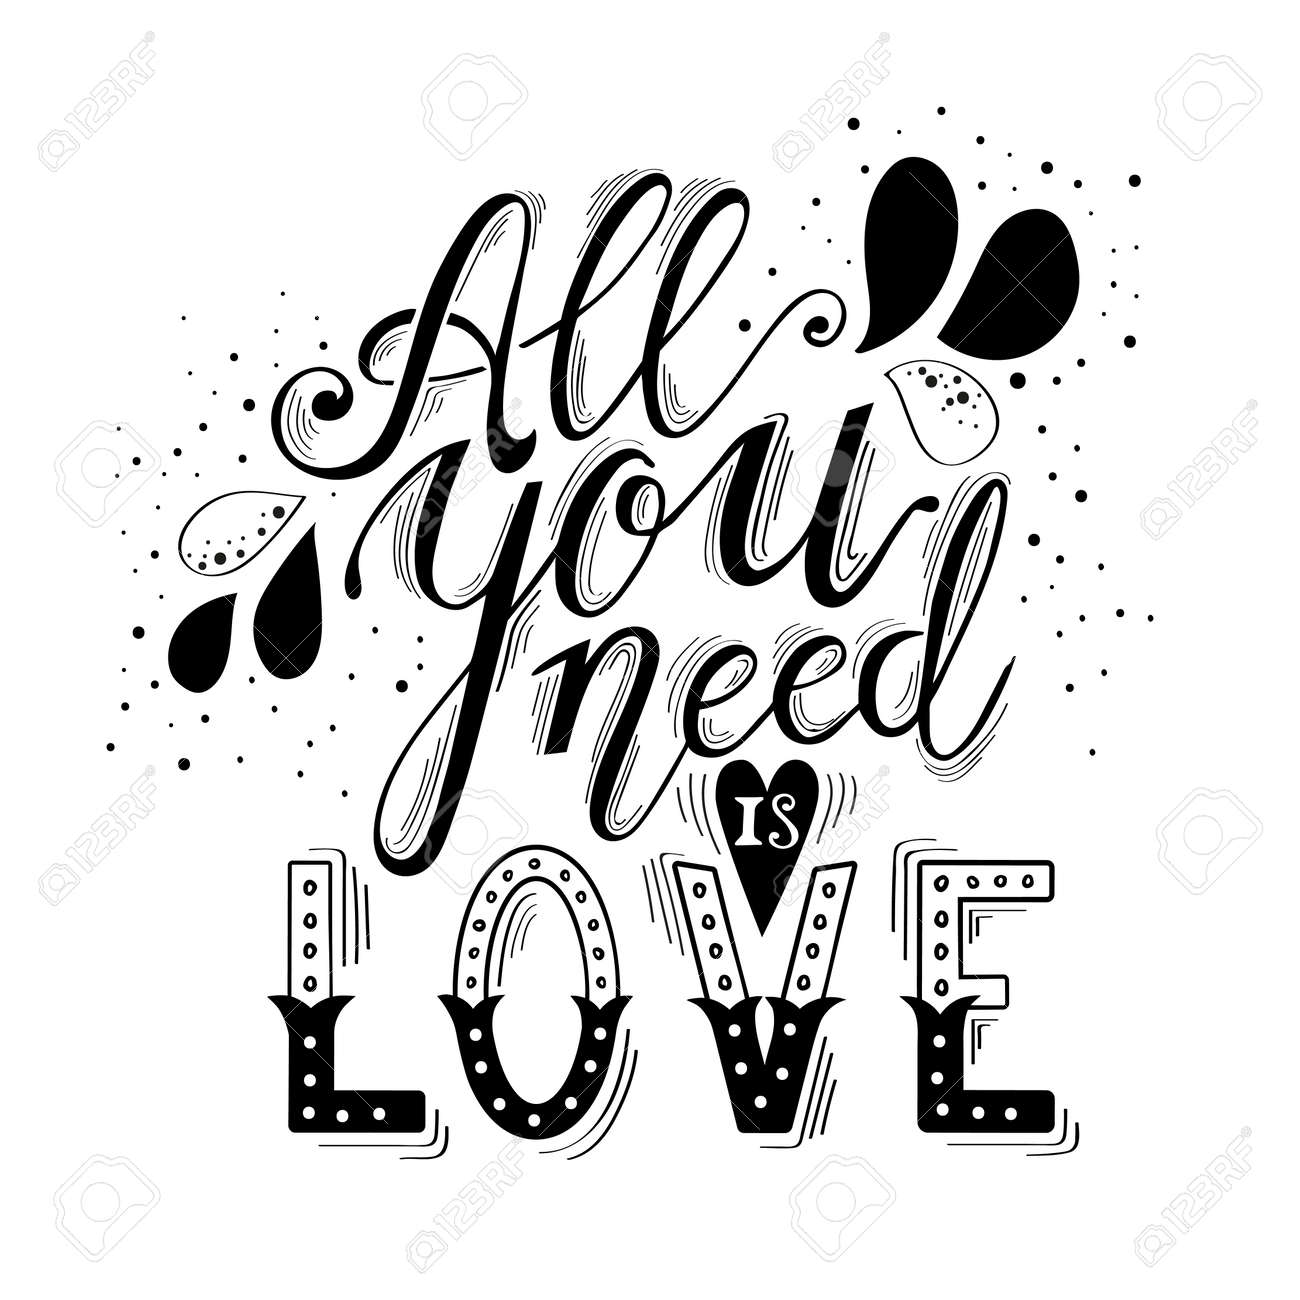 All you need is love hand lettering and decoration. Greeting card print on T-shirts and bags. - 51797077